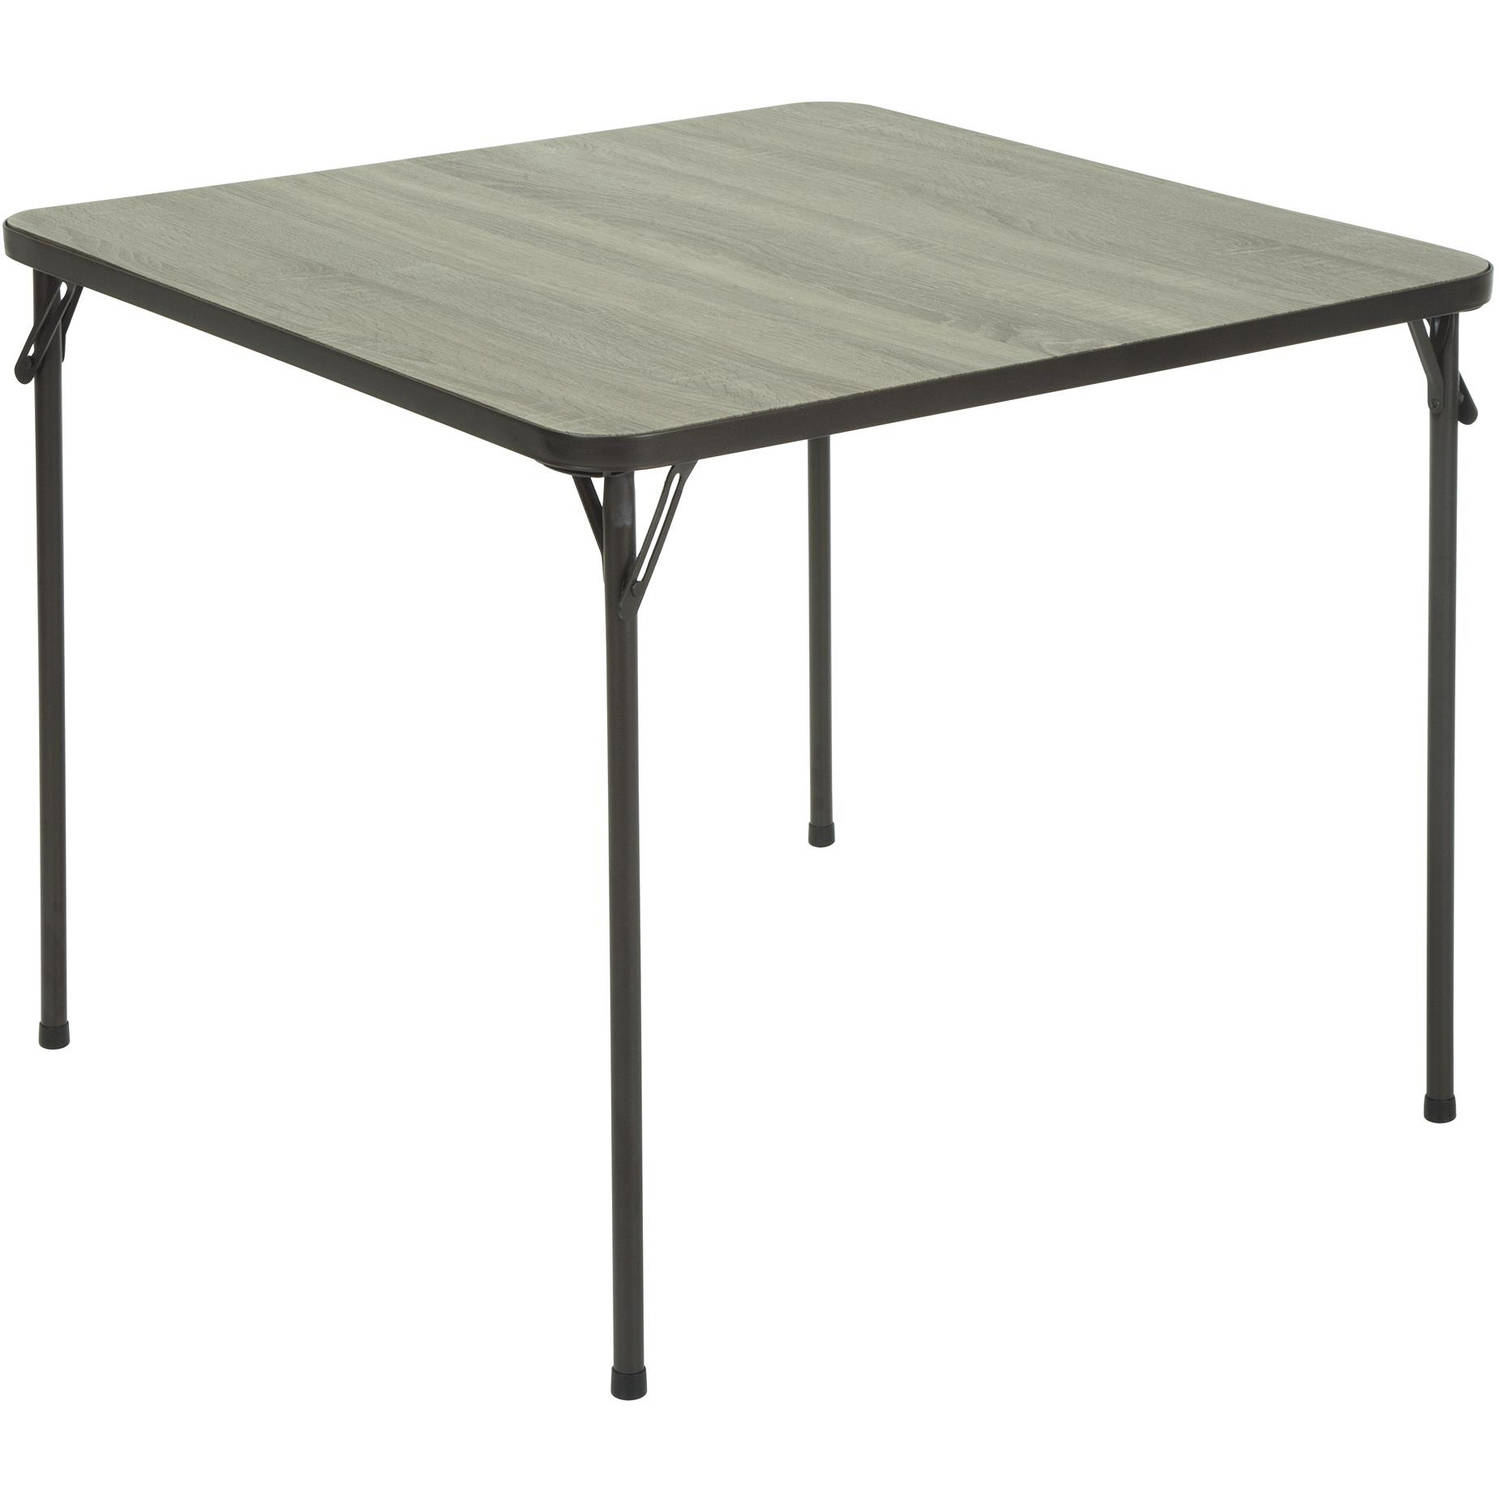 "Cosco 34"" Square Textured Wood Grain Resin Top Folding Table, Spring Oak by Cosco"